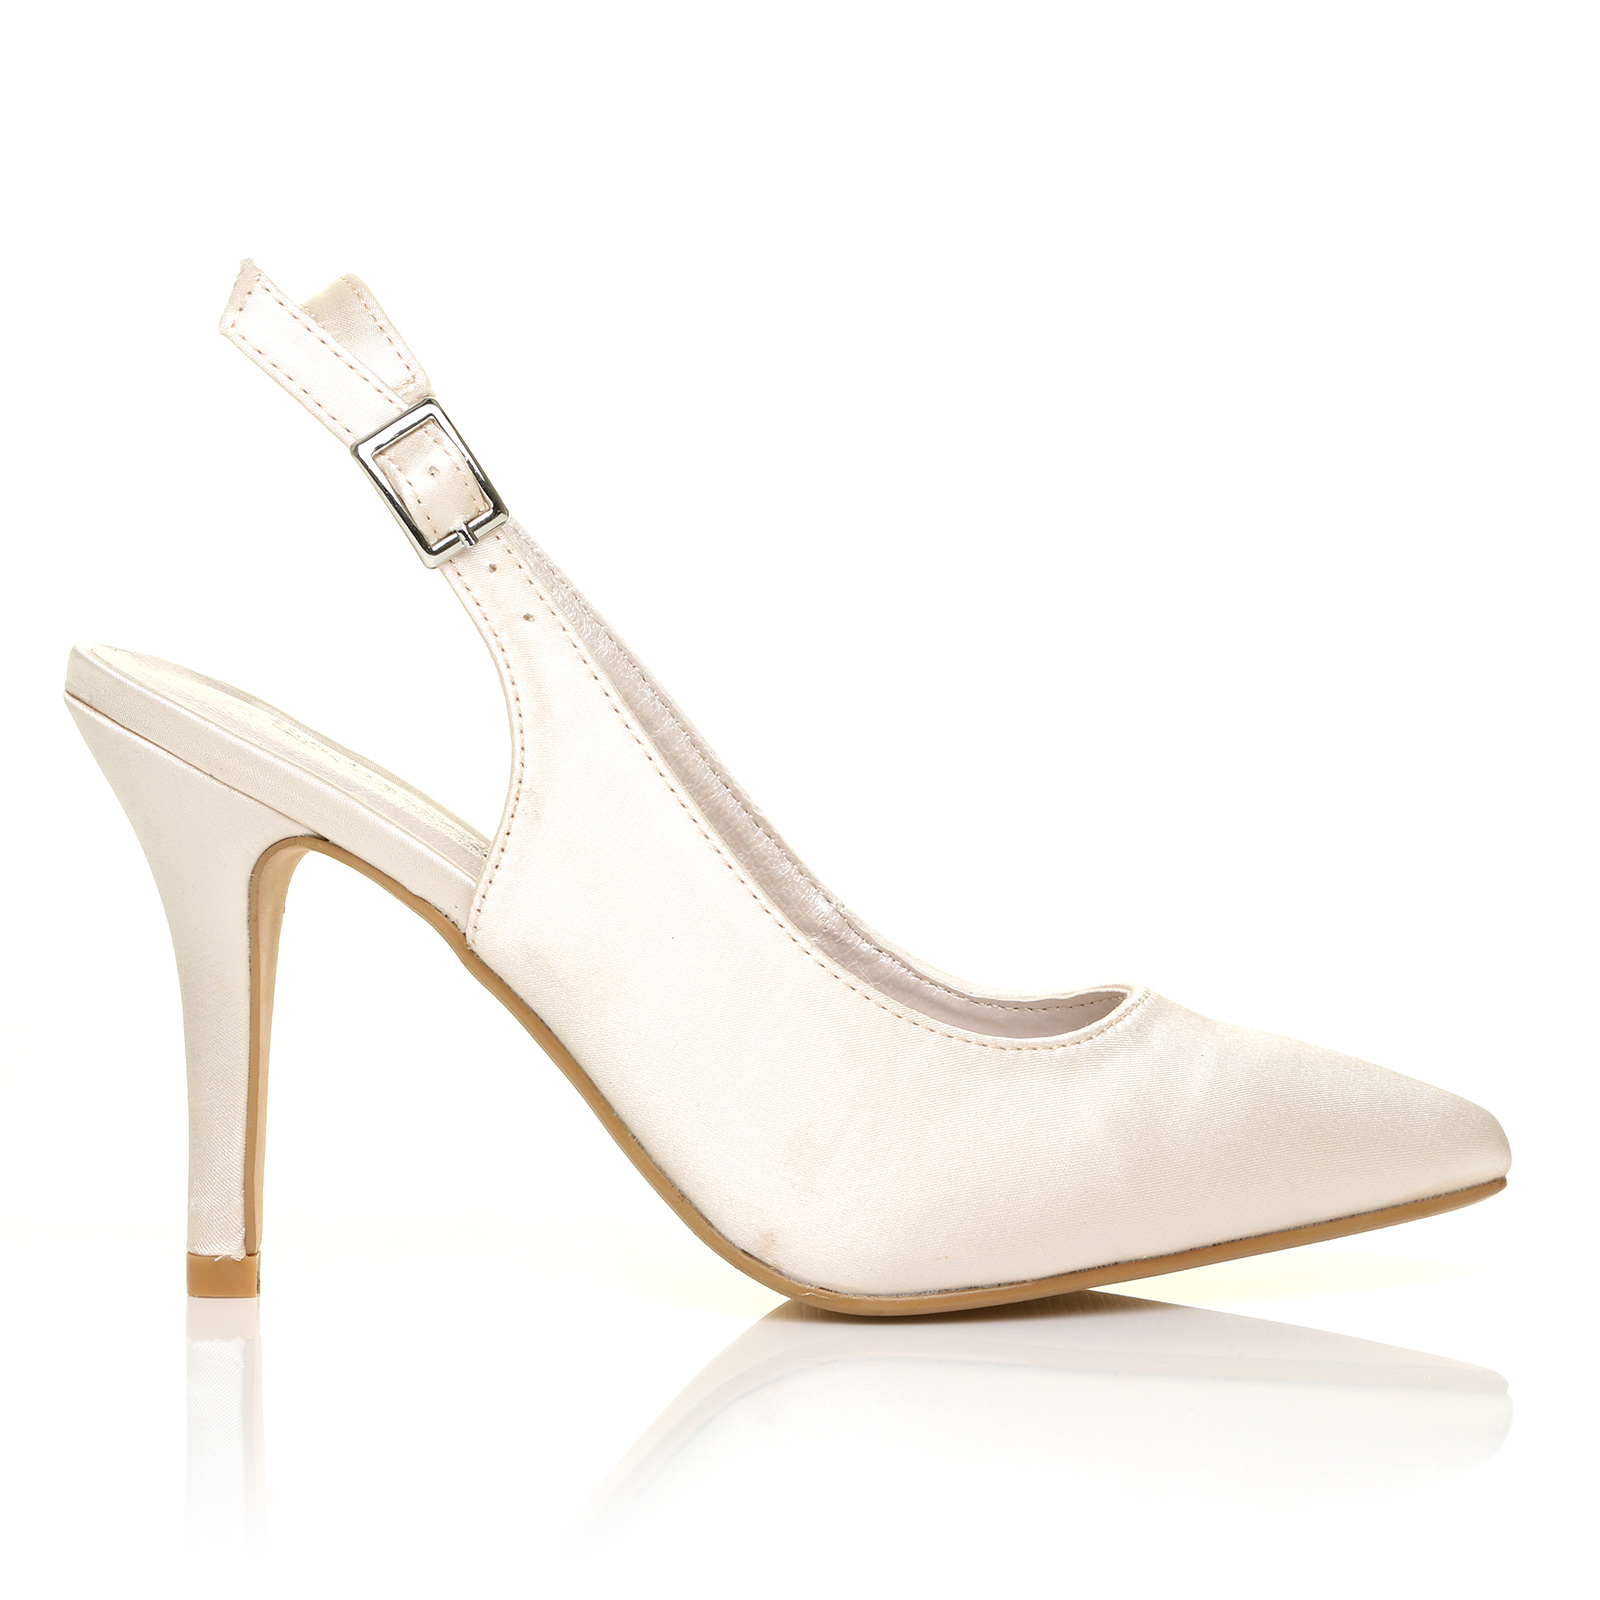 Shop for stiletto heels from weddingdresstrend. Our online store provides high quality wedding shoes wholesale and retail. Black platform stiletto heels, silver and gold stiletto heels are popular%(73).